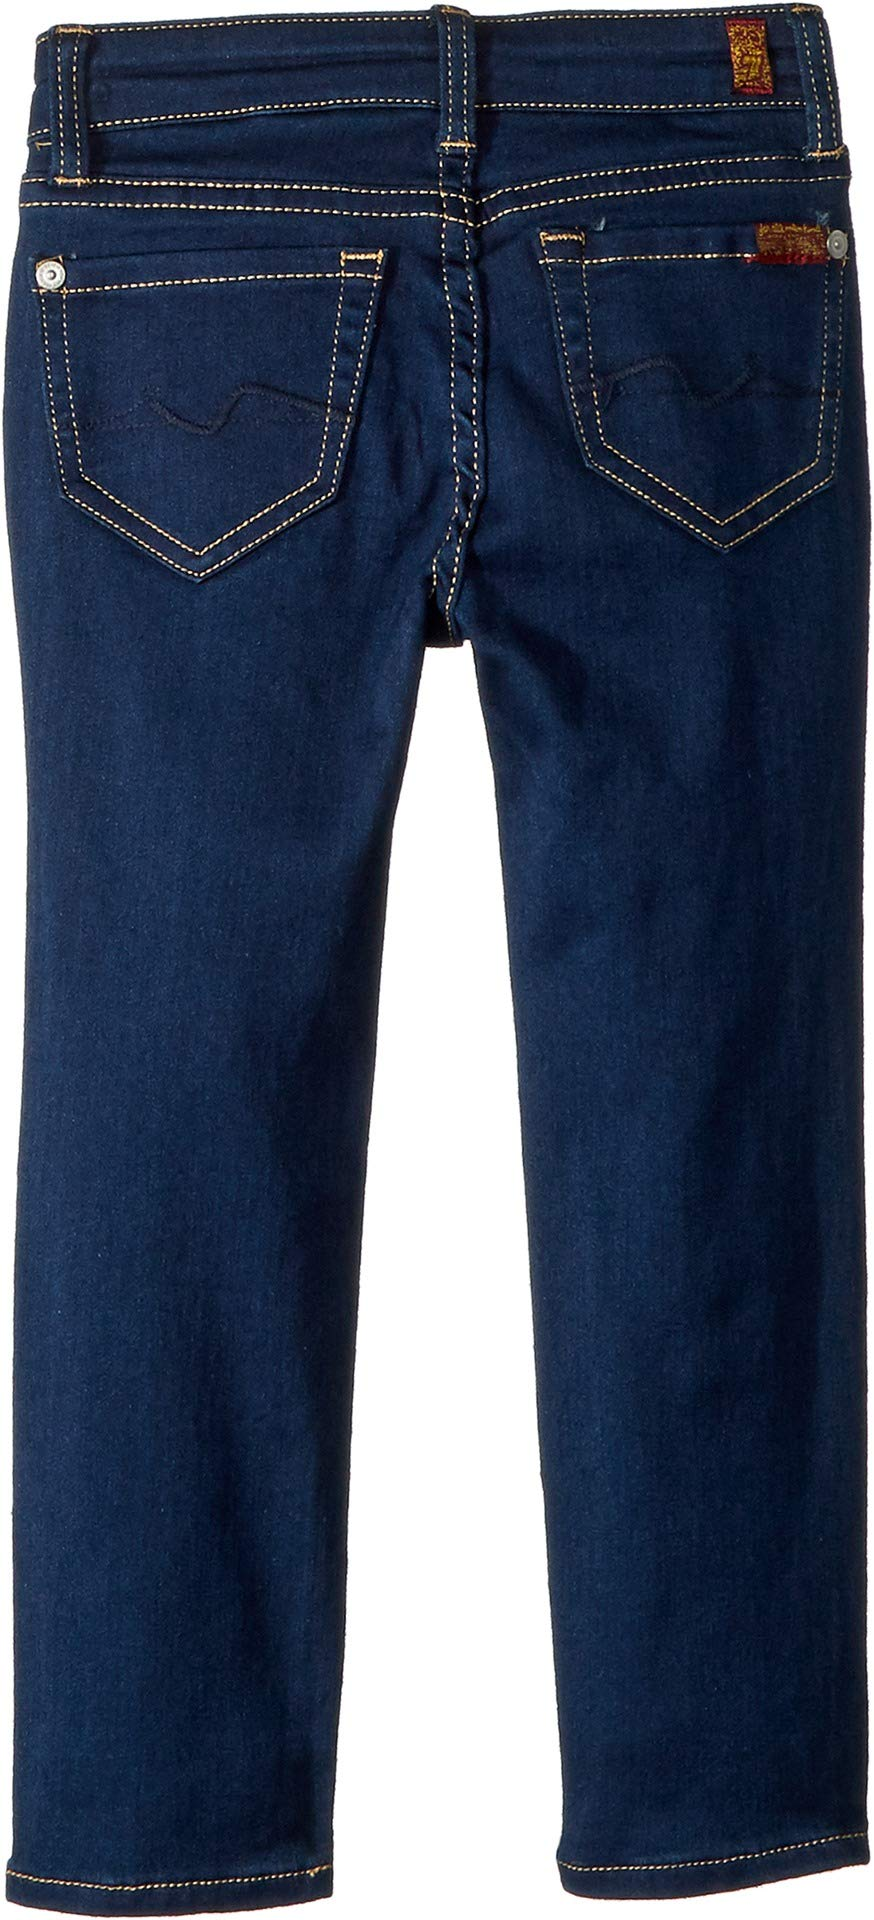 7 For All Mankind Kids Girl's Skinny Jeans in Rinsed Indigo (Little Kids) Rinsed Indigo 4 US Little Kid by 7 For All Mankind (Image #2)